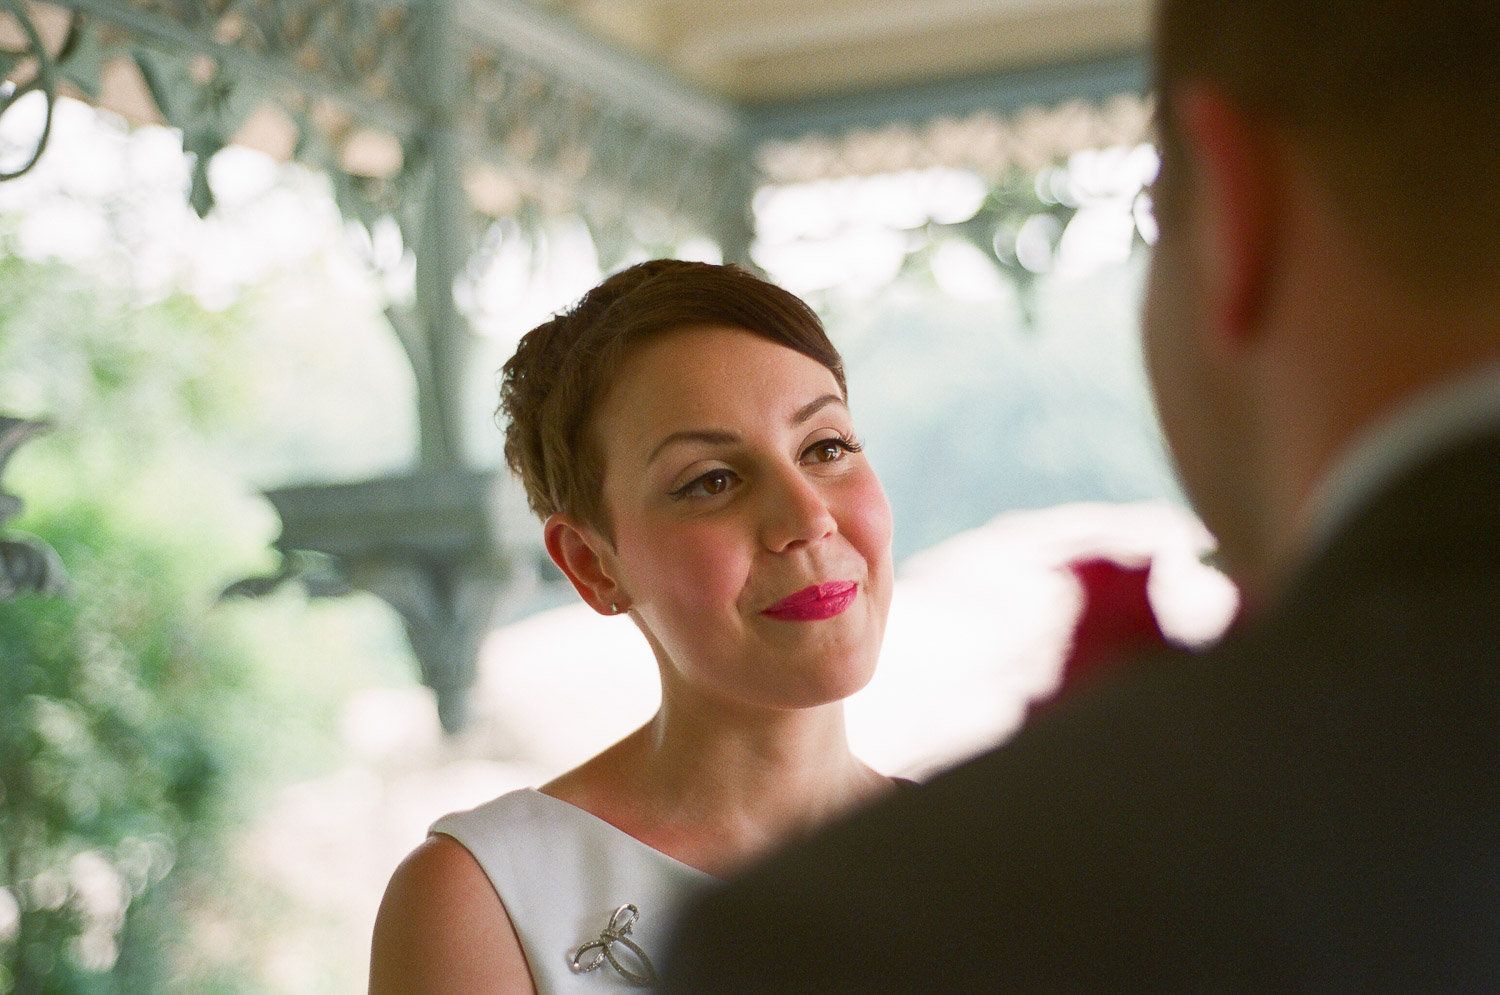 nyc central park mini wedding ceremony photo by wendy g photography